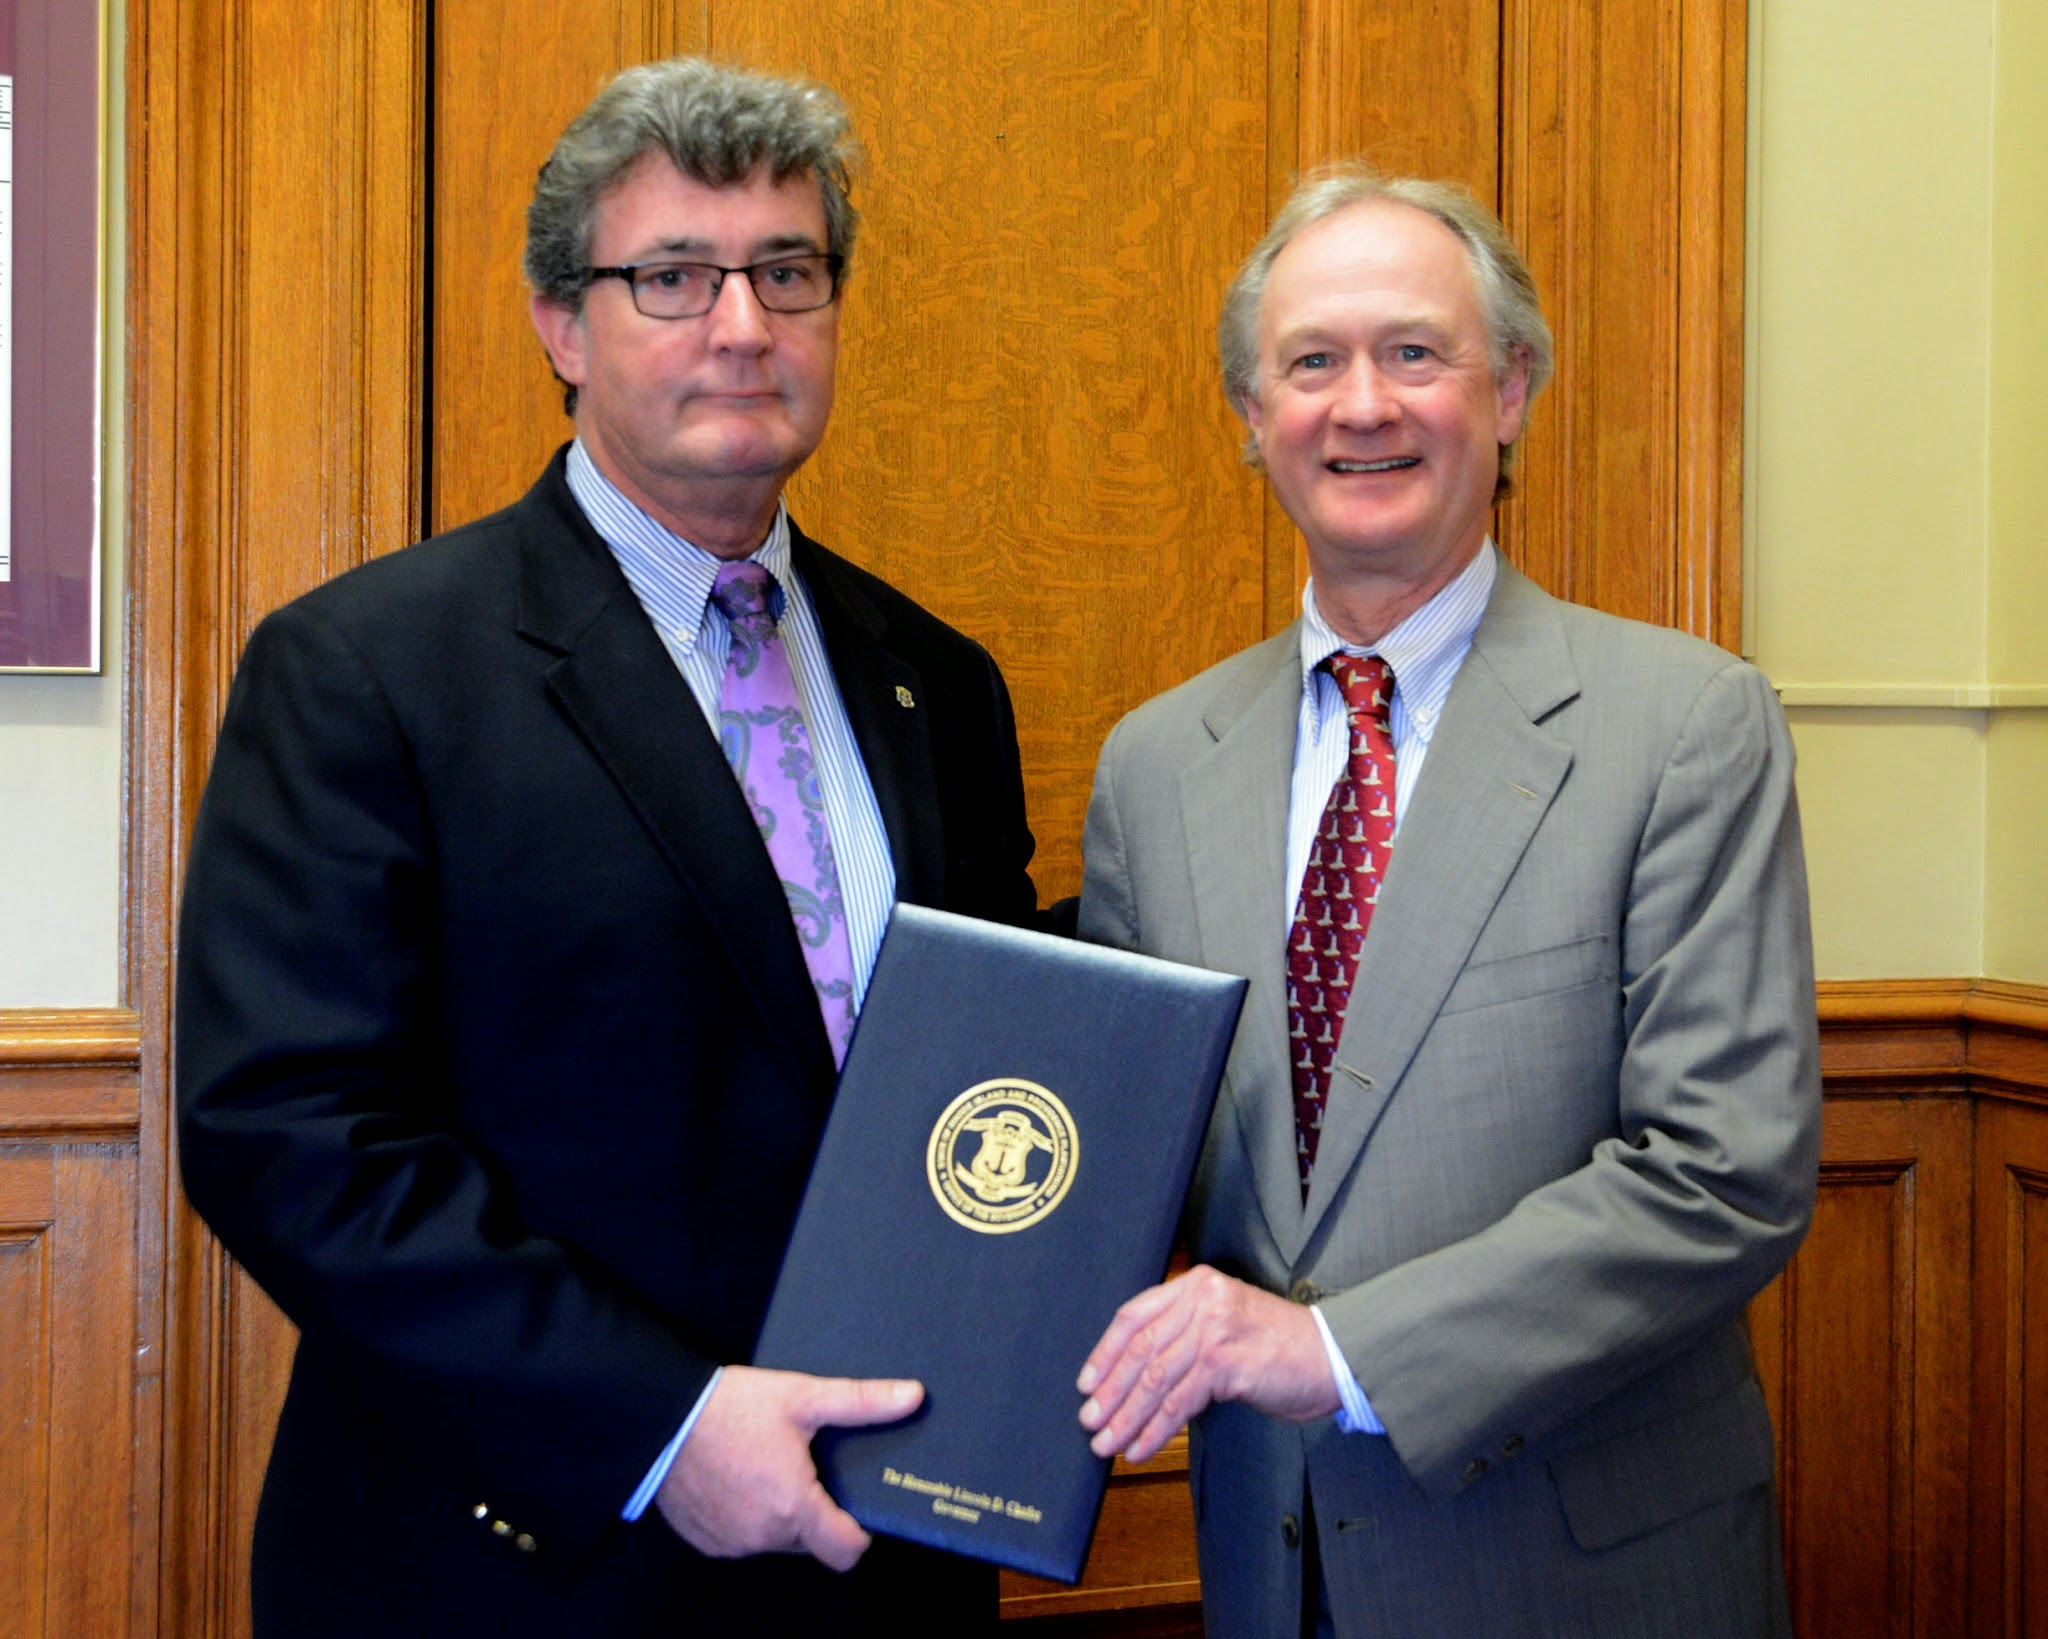 Photo: Rep. Robert Craven is presented a ceremonial copy of his legislation by Governor Lincoln Chafee that he signed on May 6, 2014.  Rep. Craven's legislation saved a $6 million federal grant awarded to the Quonset Development Corporation by the federal government.